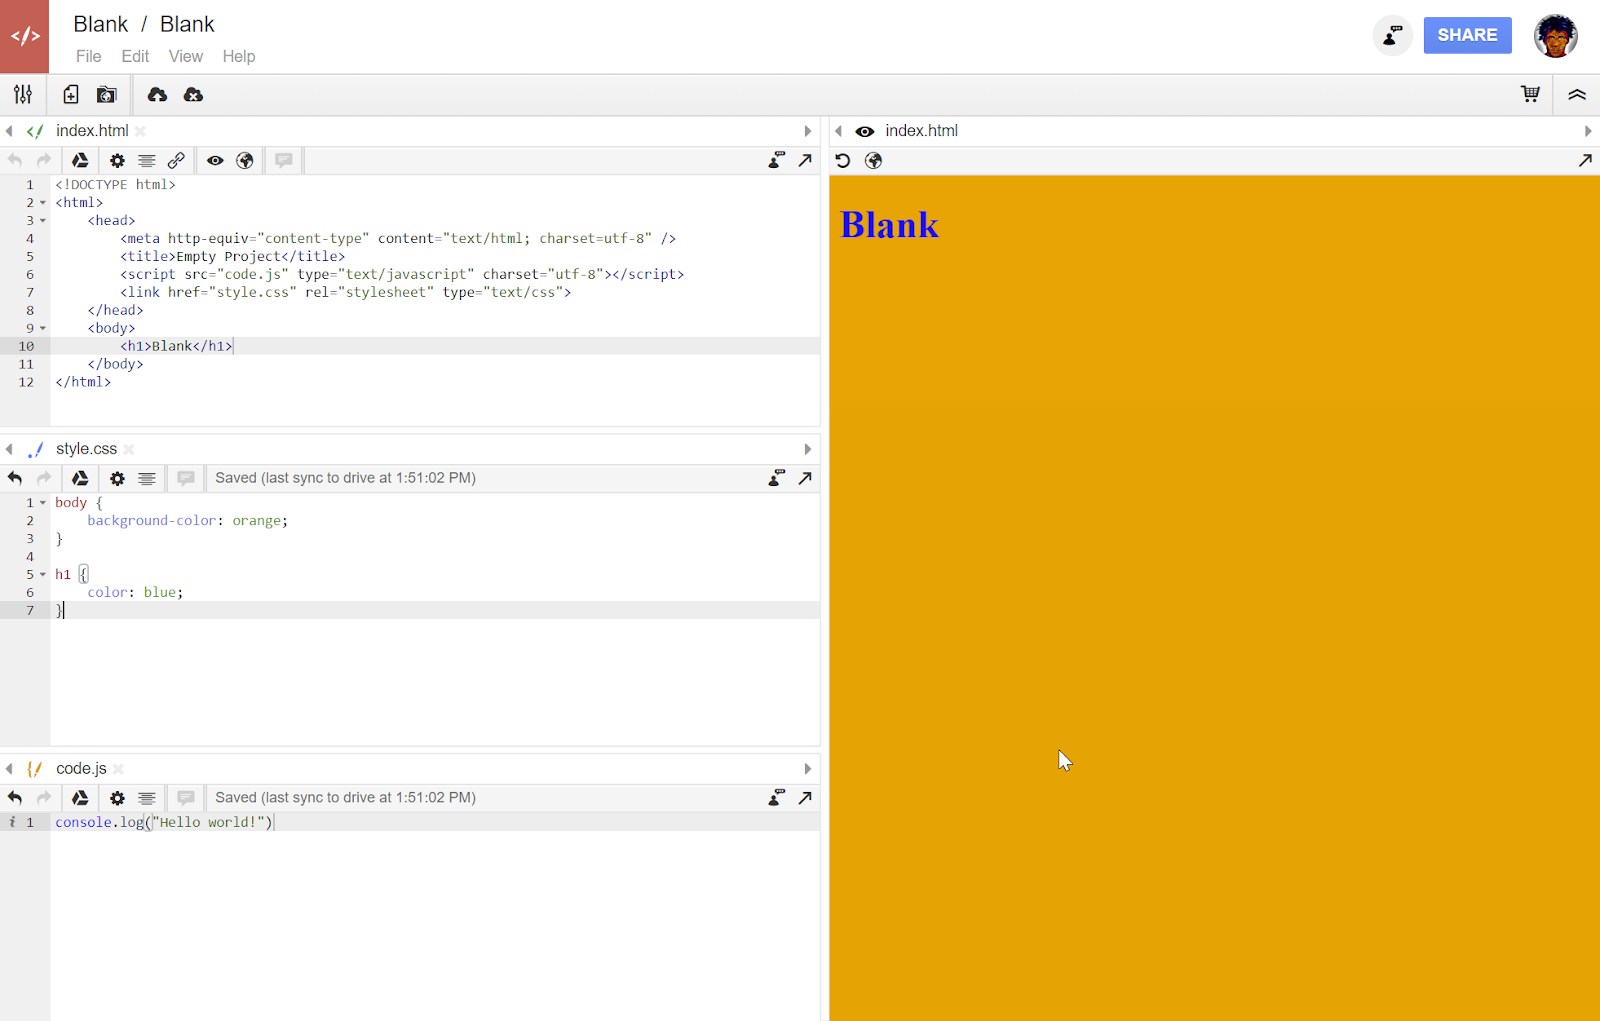 Google file javascript from drive using